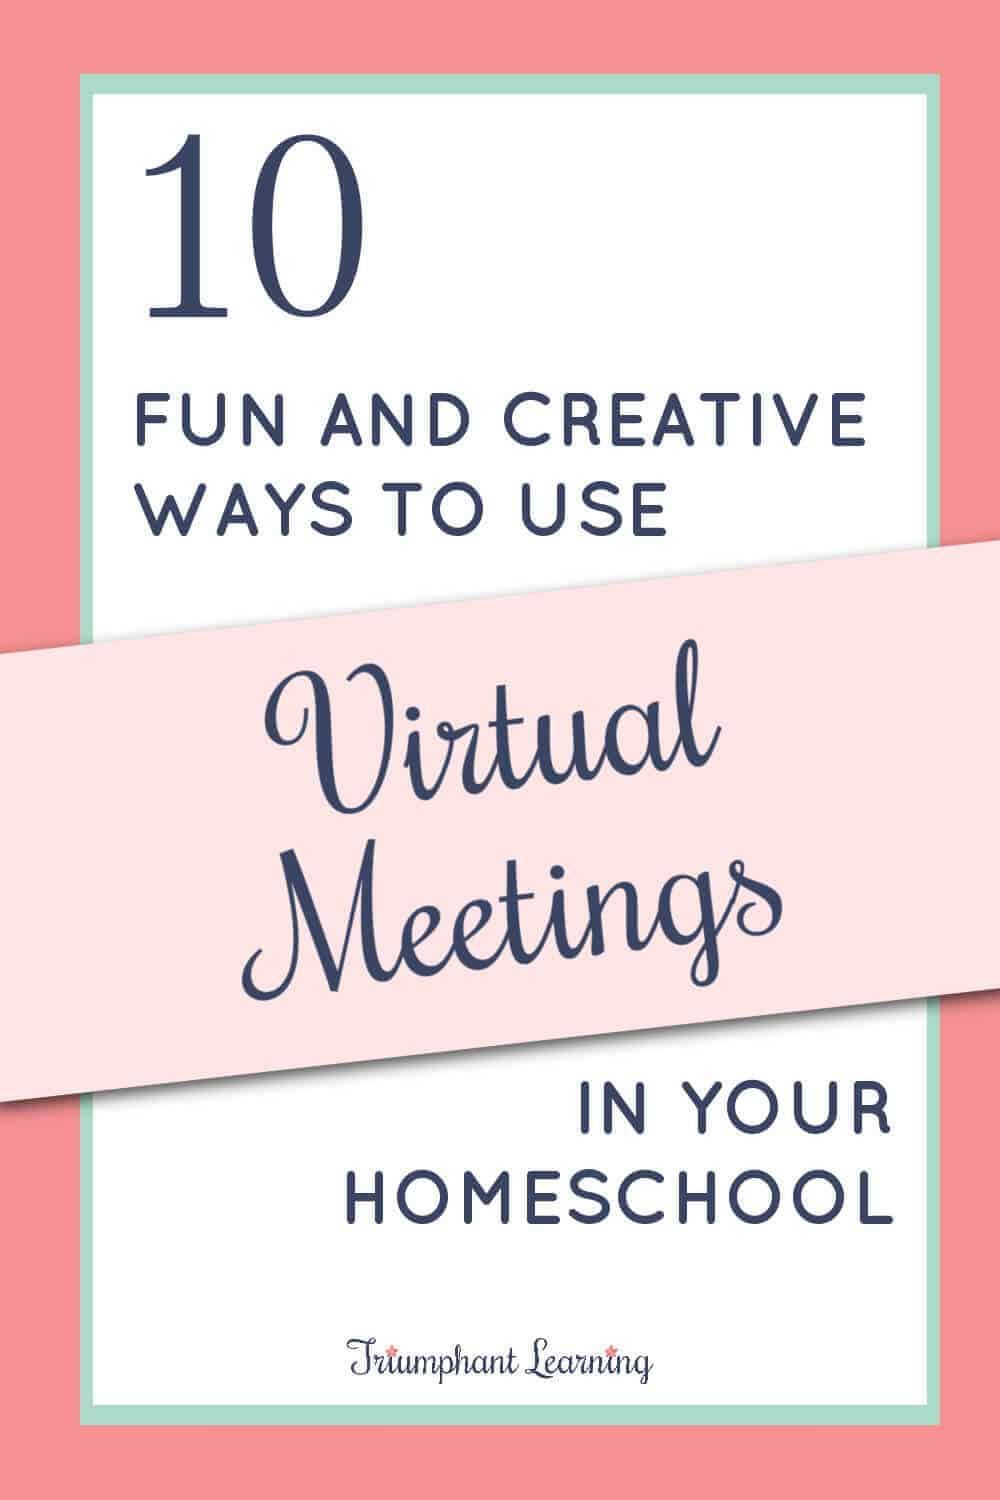 How can you use virtual meetings in your homeschool? Check out these fun & creative ways you can utilize virtual meetings in your homeschool. via @TriLearning